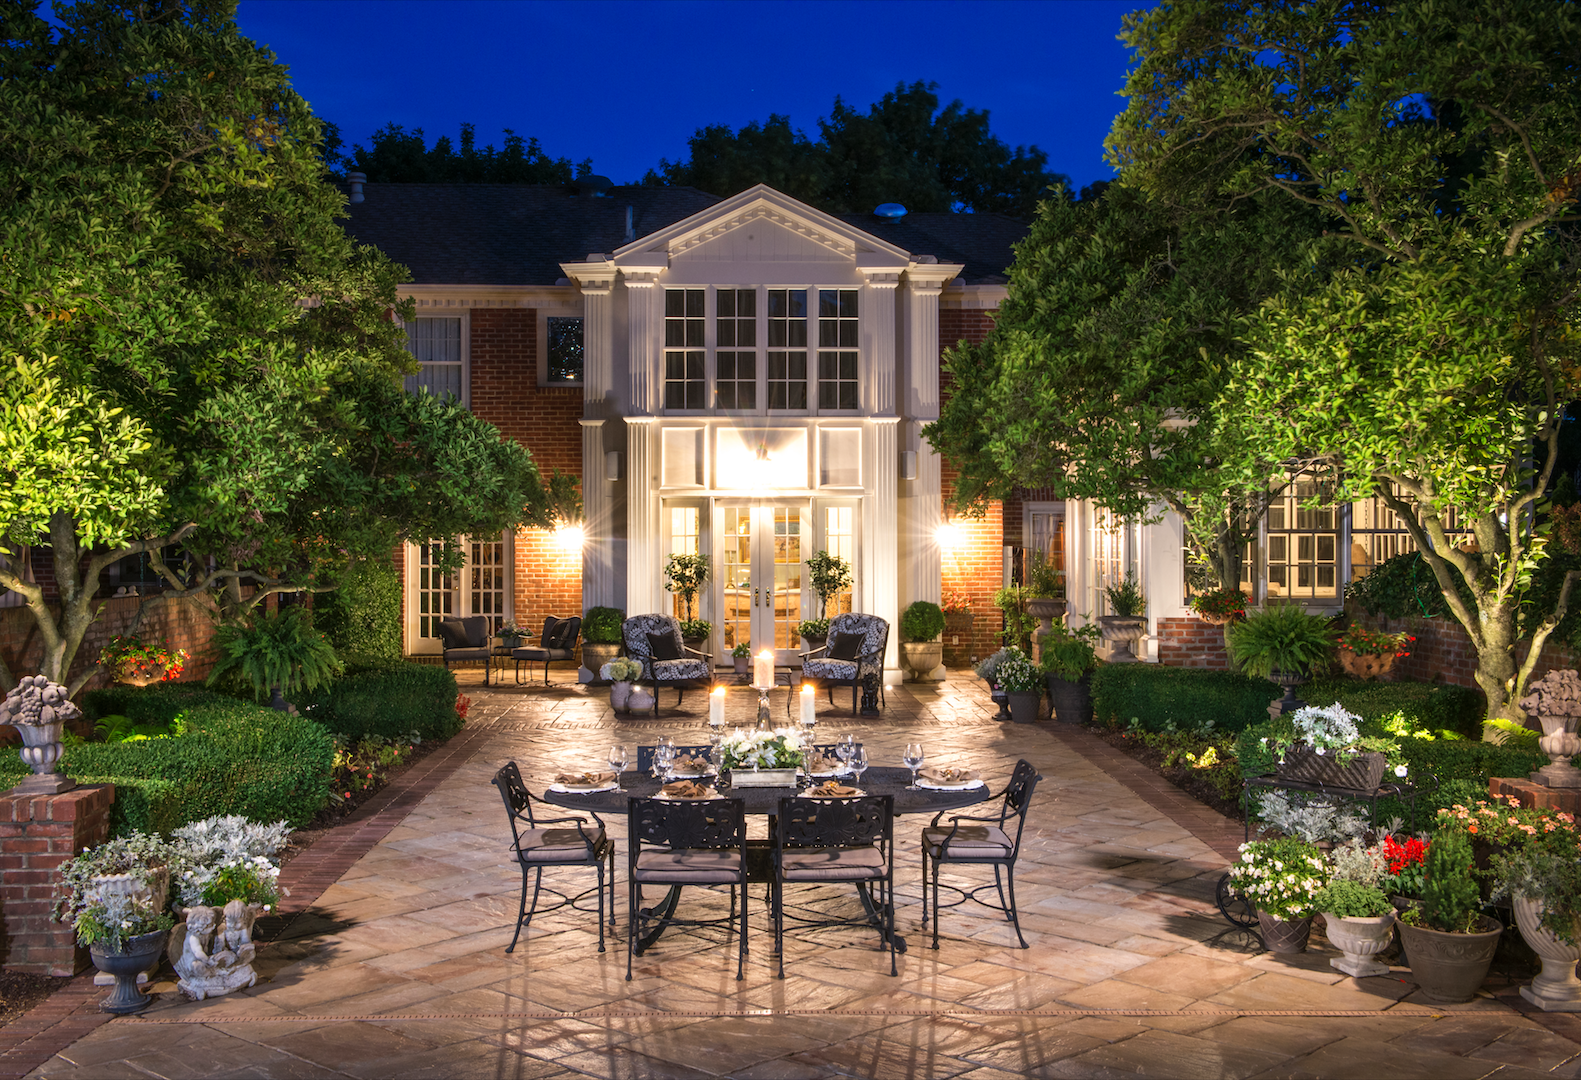 Improve Your Client's Night Time Outdoor Living Experience with Accent Lights in York, PA